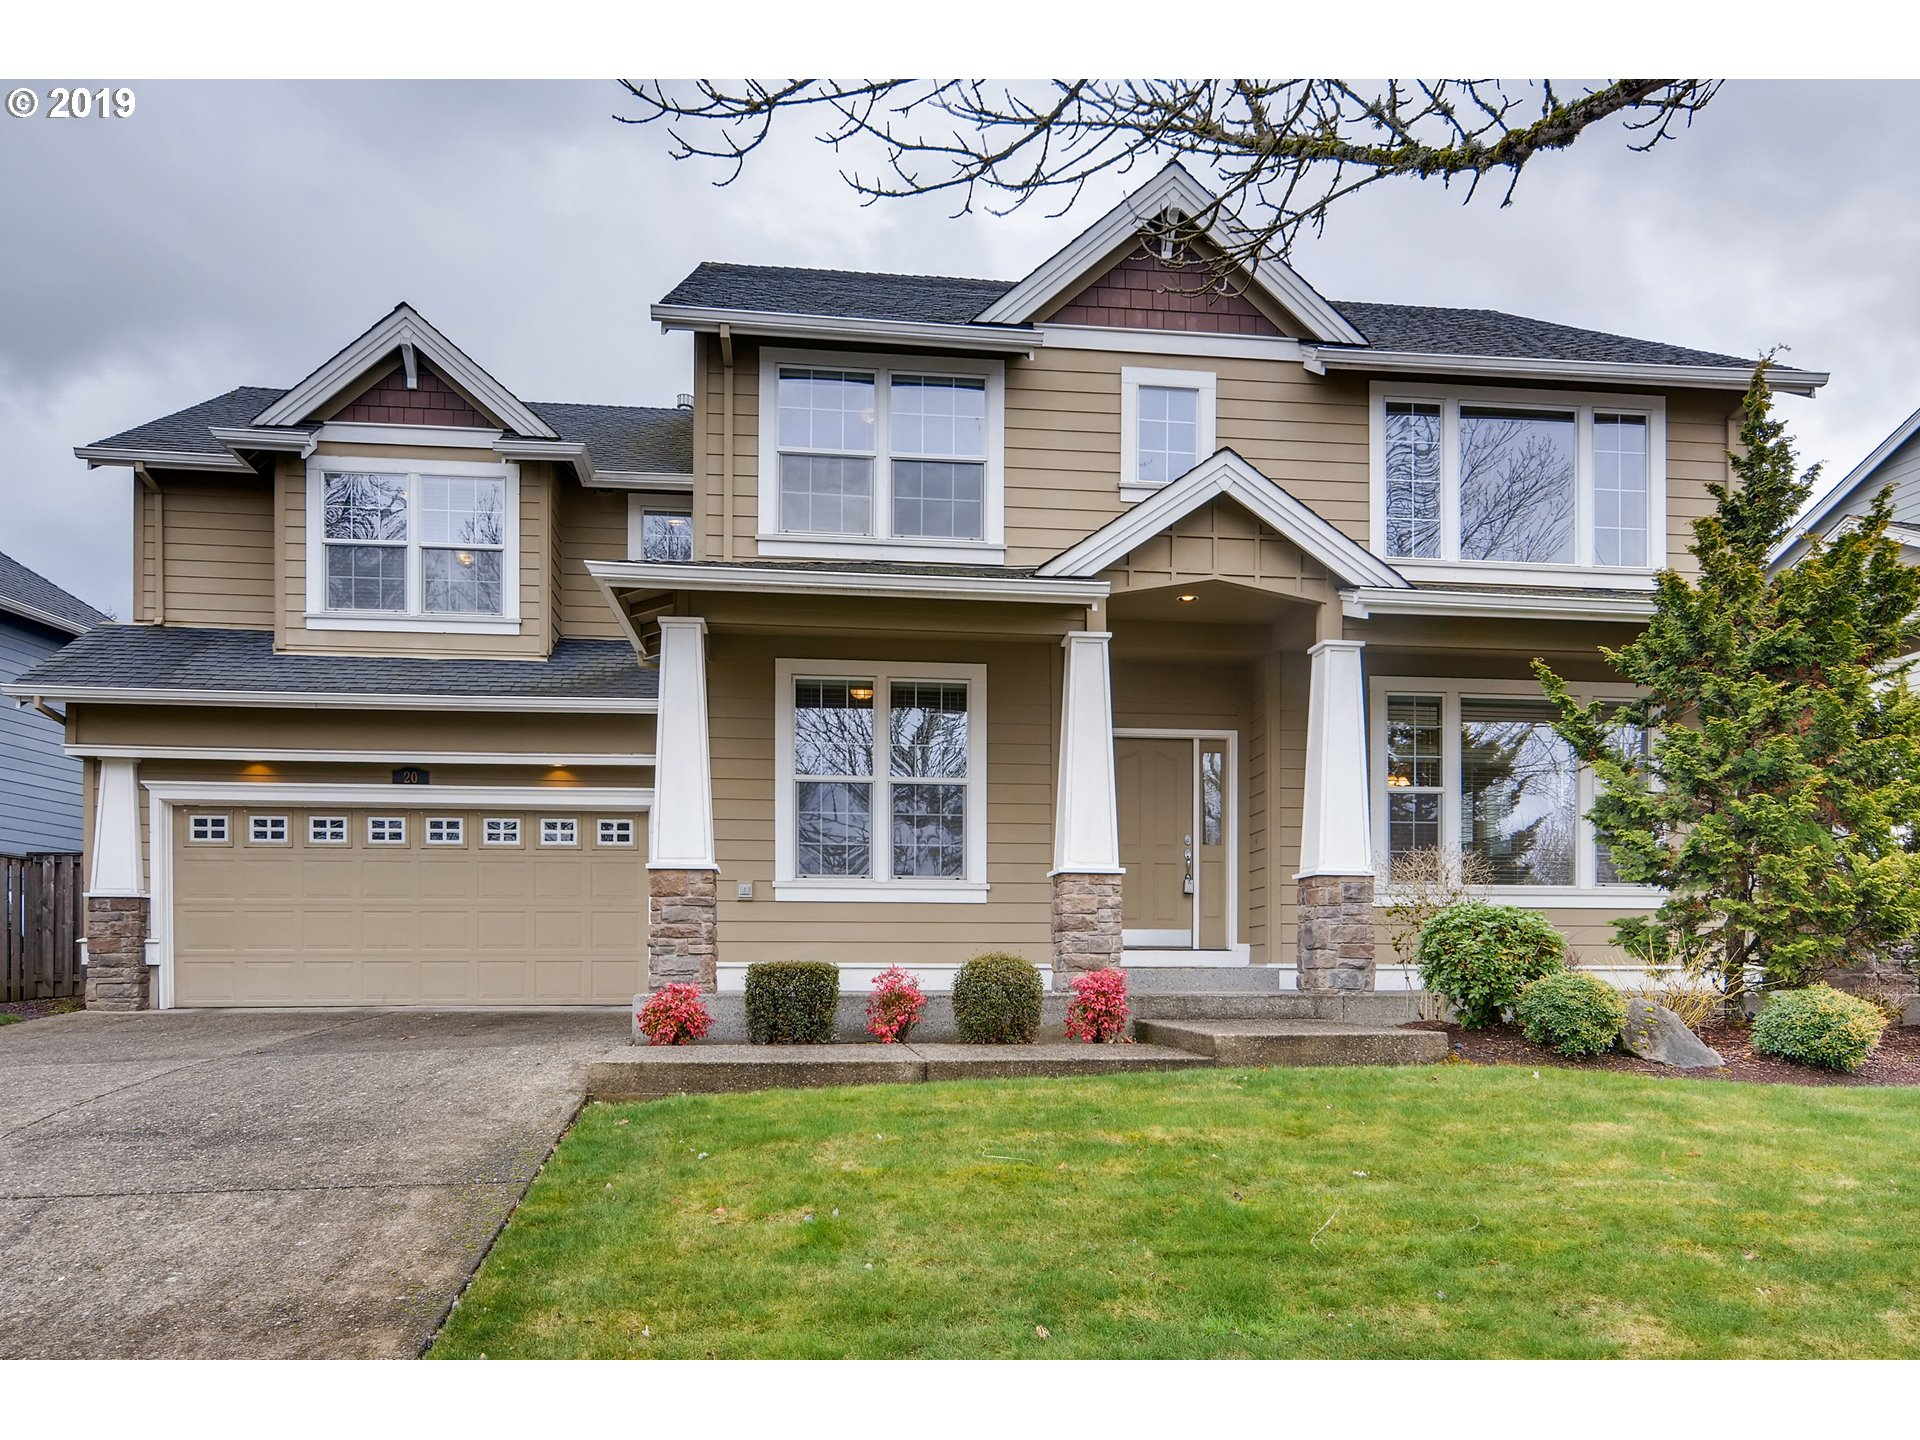 20 SW 167TH AVE, Beaverton OR 97006